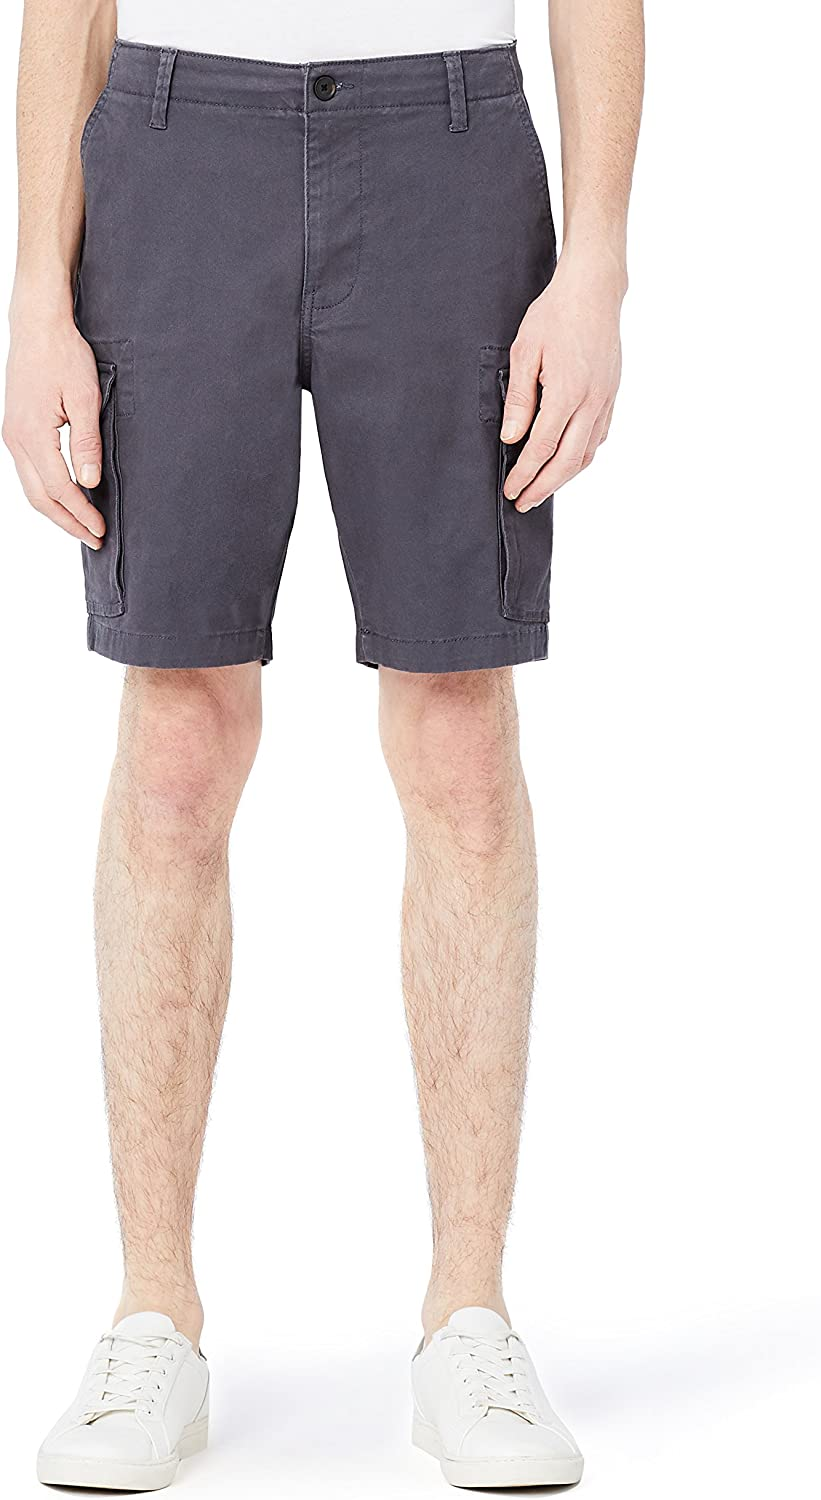 Amazon Brand - Meraki Men's Cotton Cargo Shorts